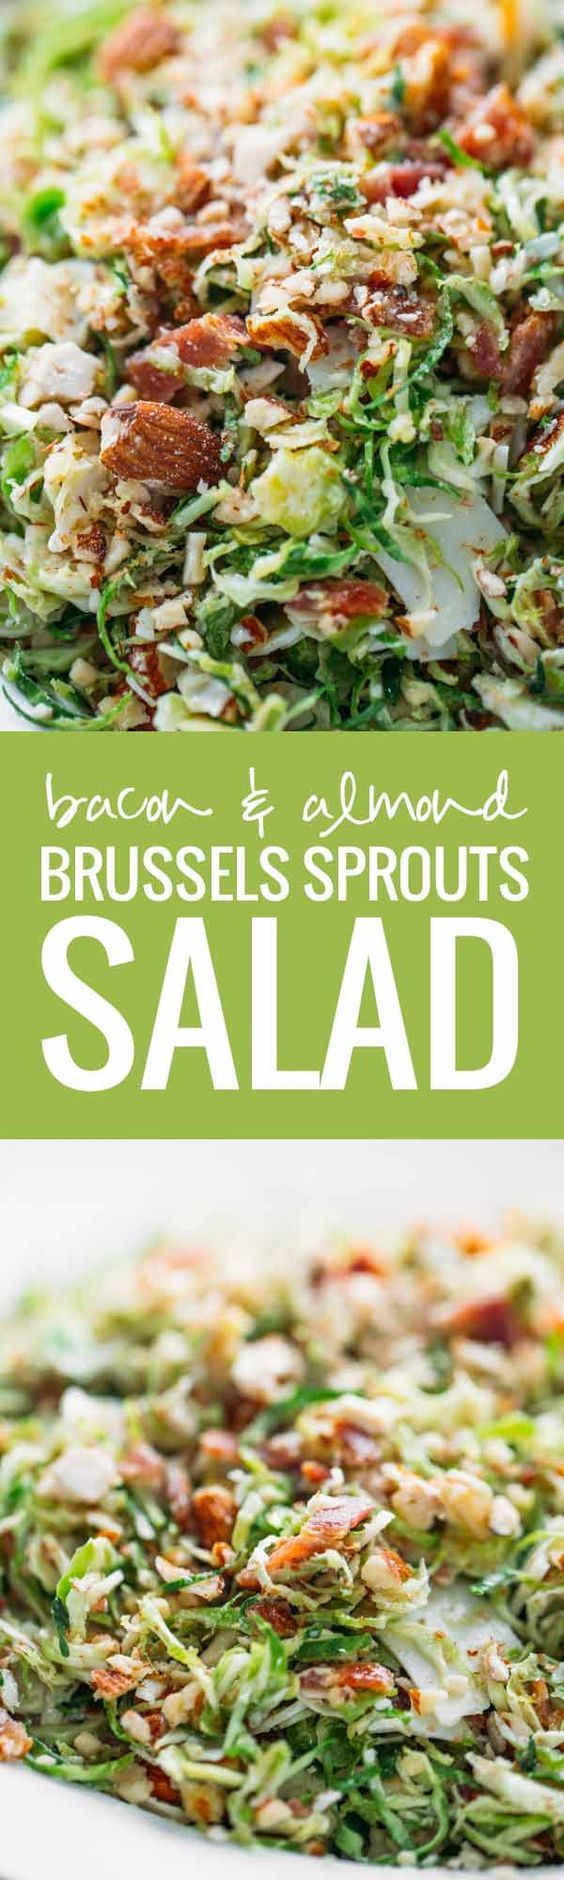 Bacon and Brussels Sprout Salad - bacon, almonds, Parmesan, light citrus vinaigrette, and paper-thin brussels sprouts!: